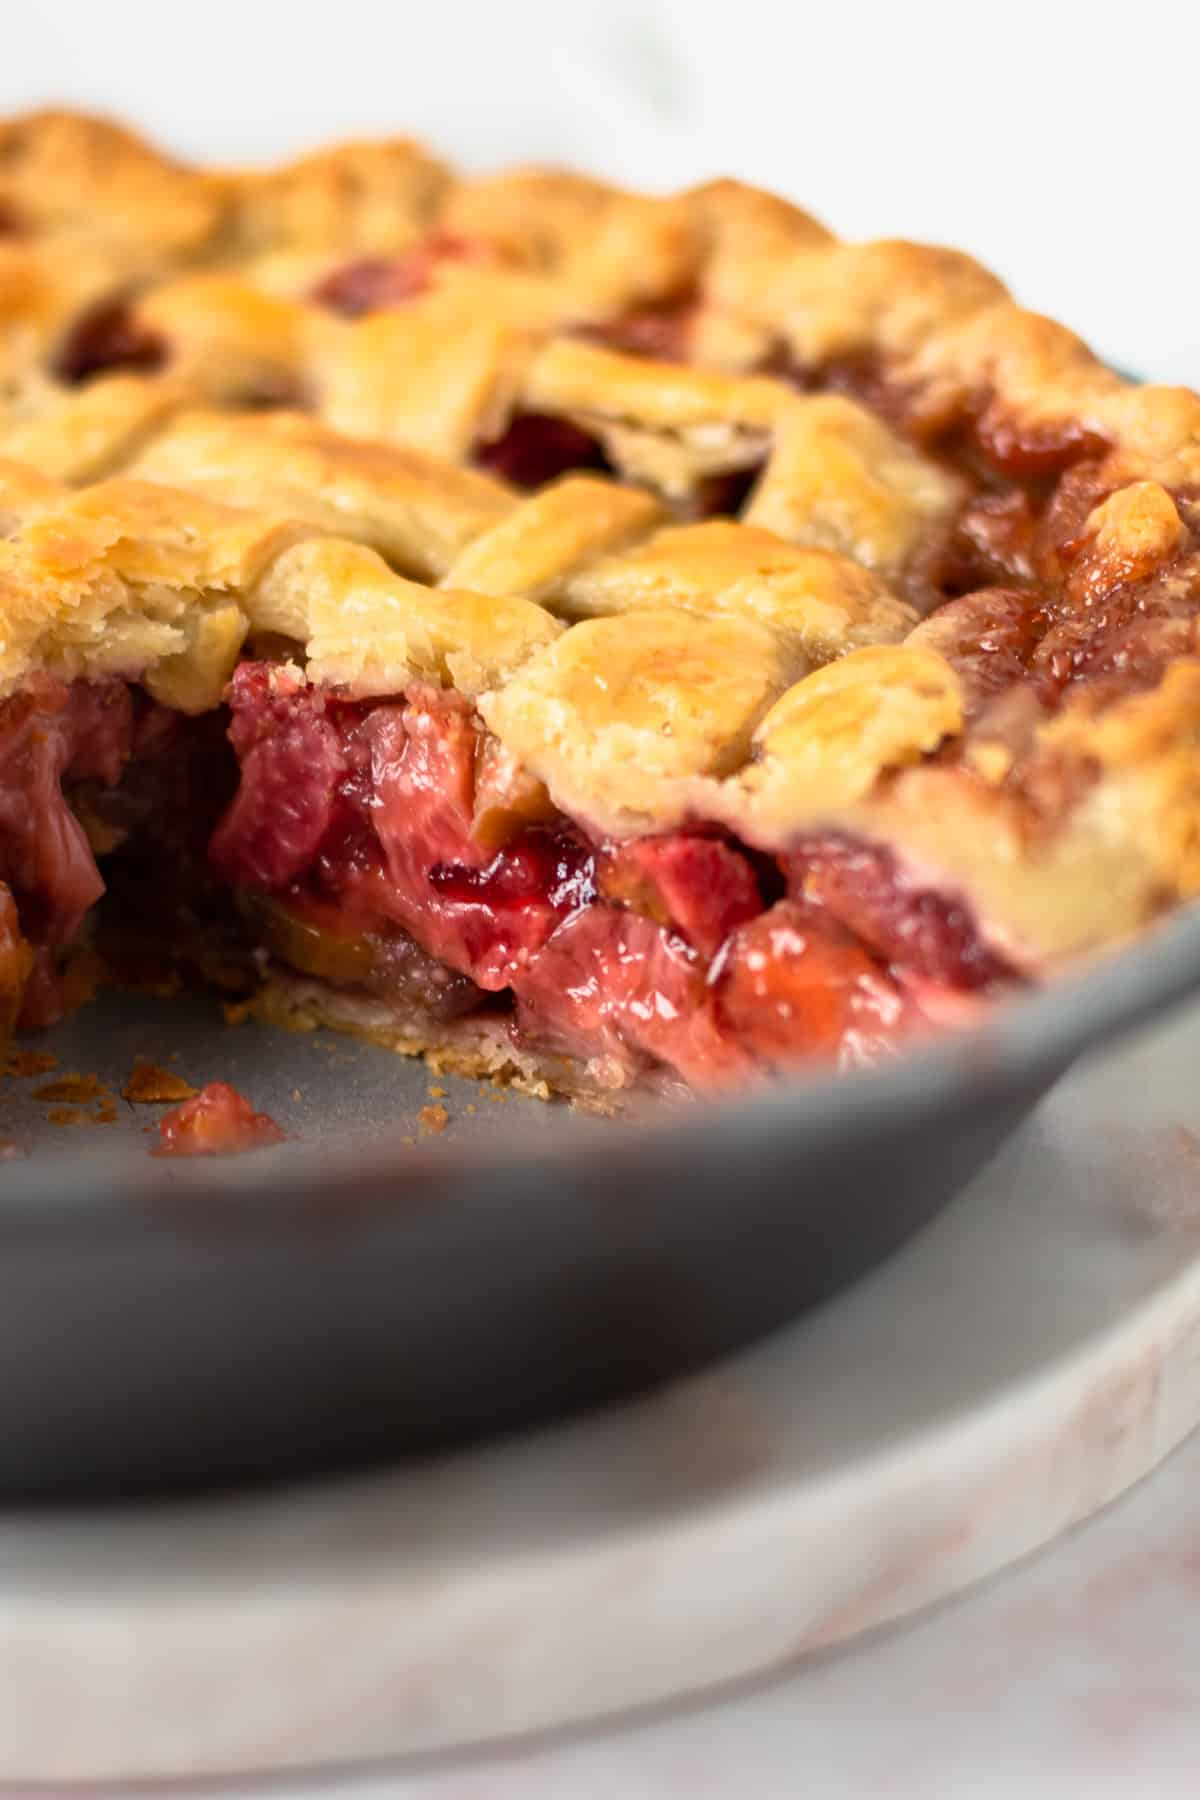 A baked strawberry Rhubarb pie with a slice taken out of it in the pie tin.